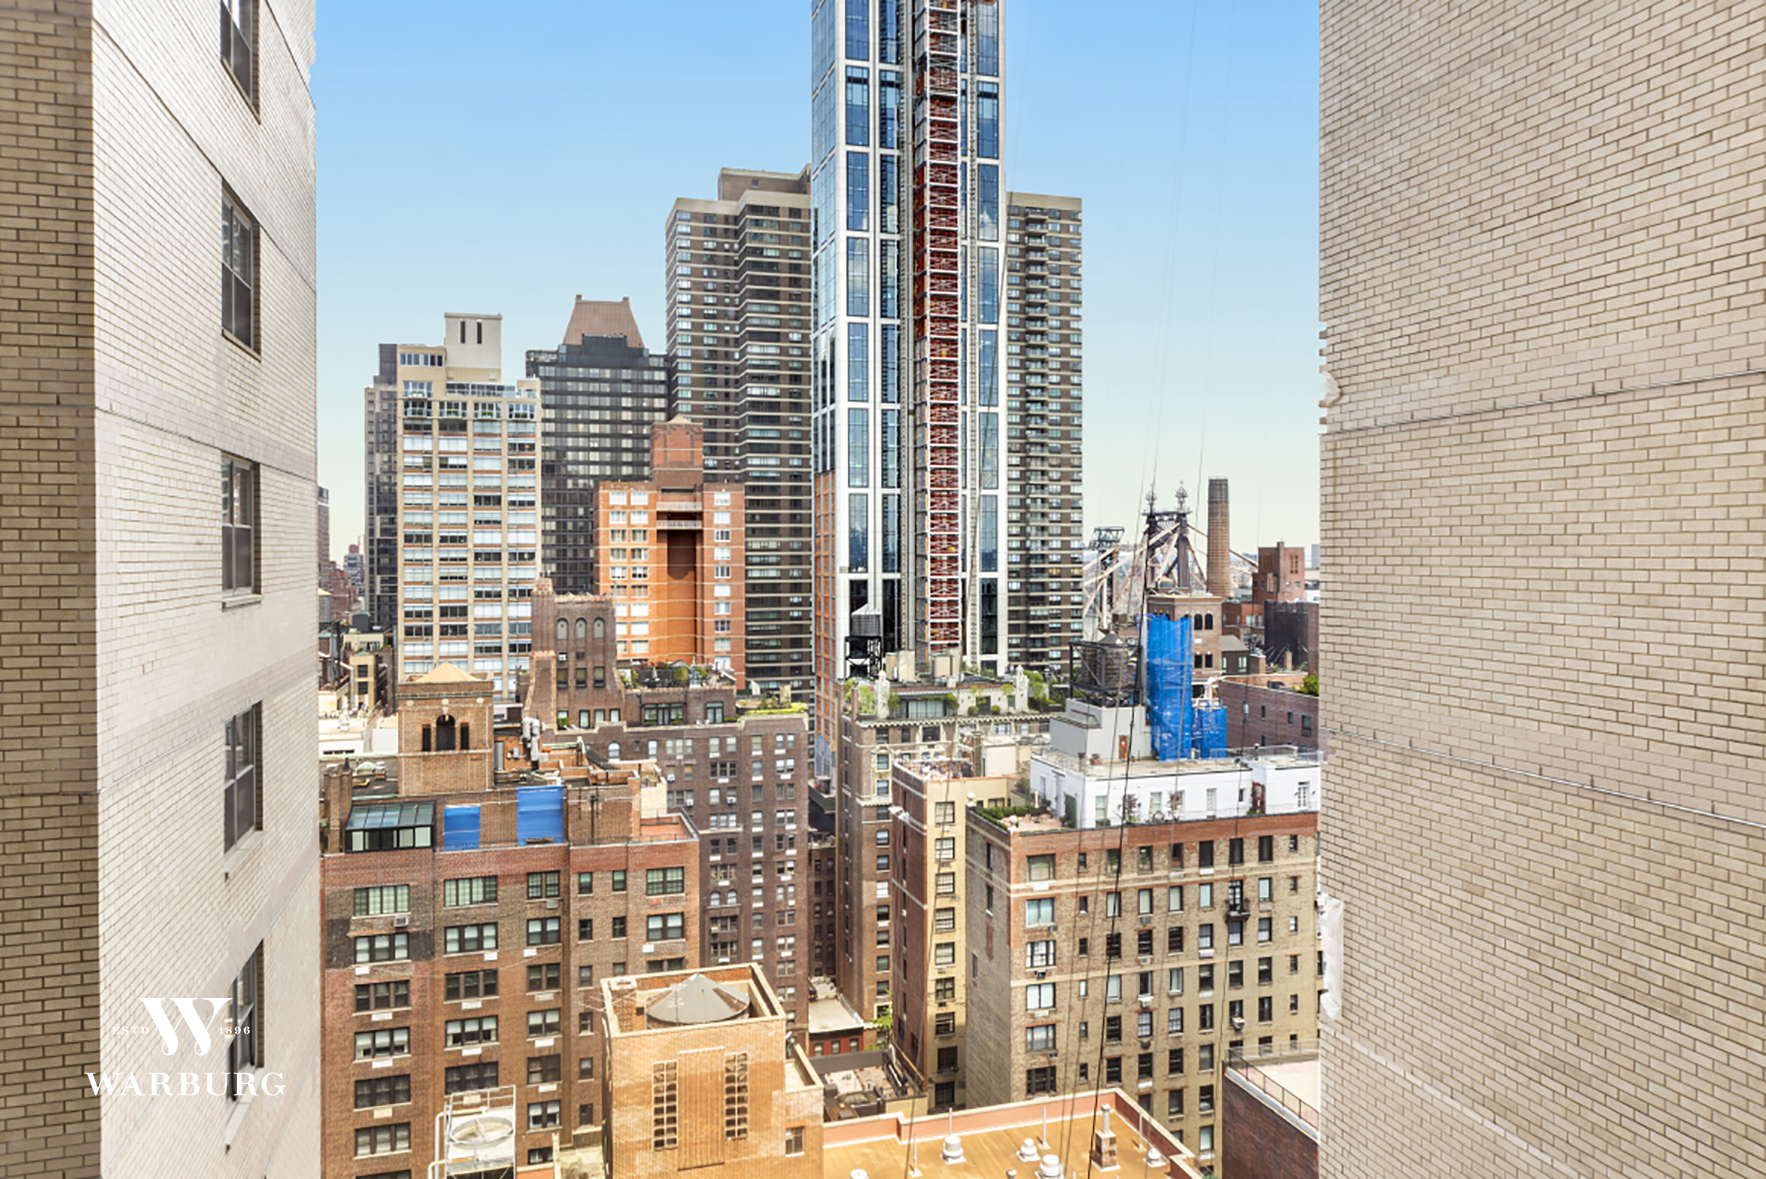 Apartment for sale at 400 East 56th Street, Apt 26K